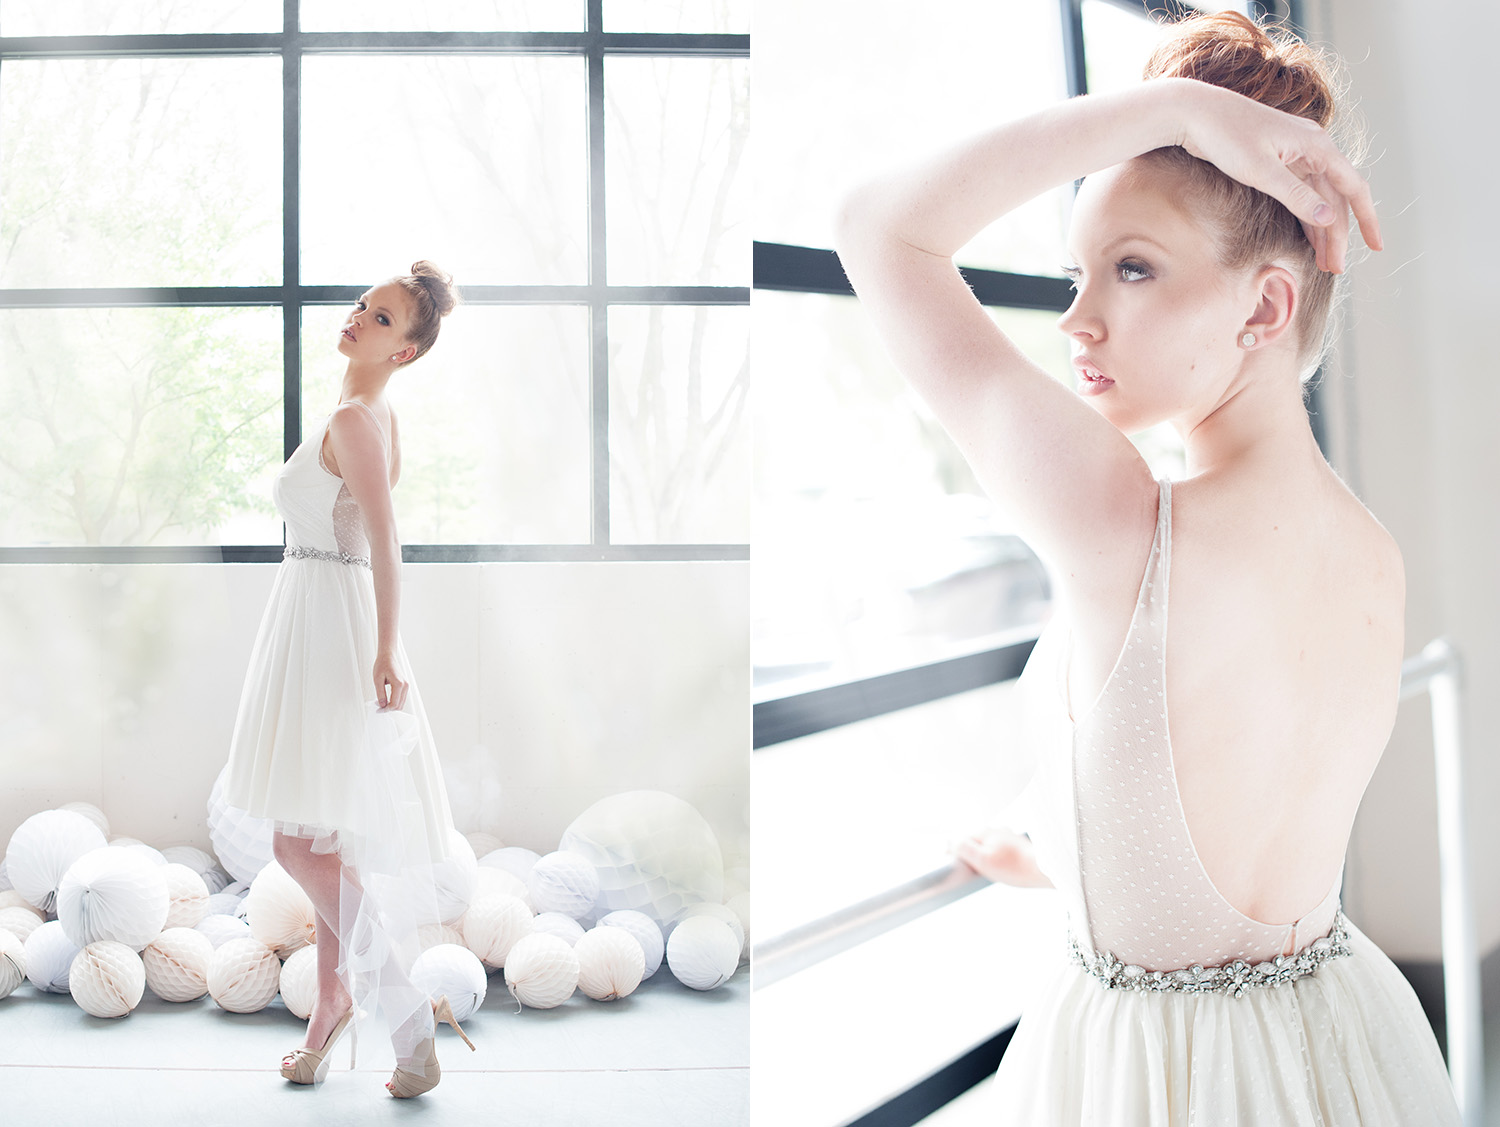 2-bridal-fashion-editorial-christa-taylor-photography.jpg